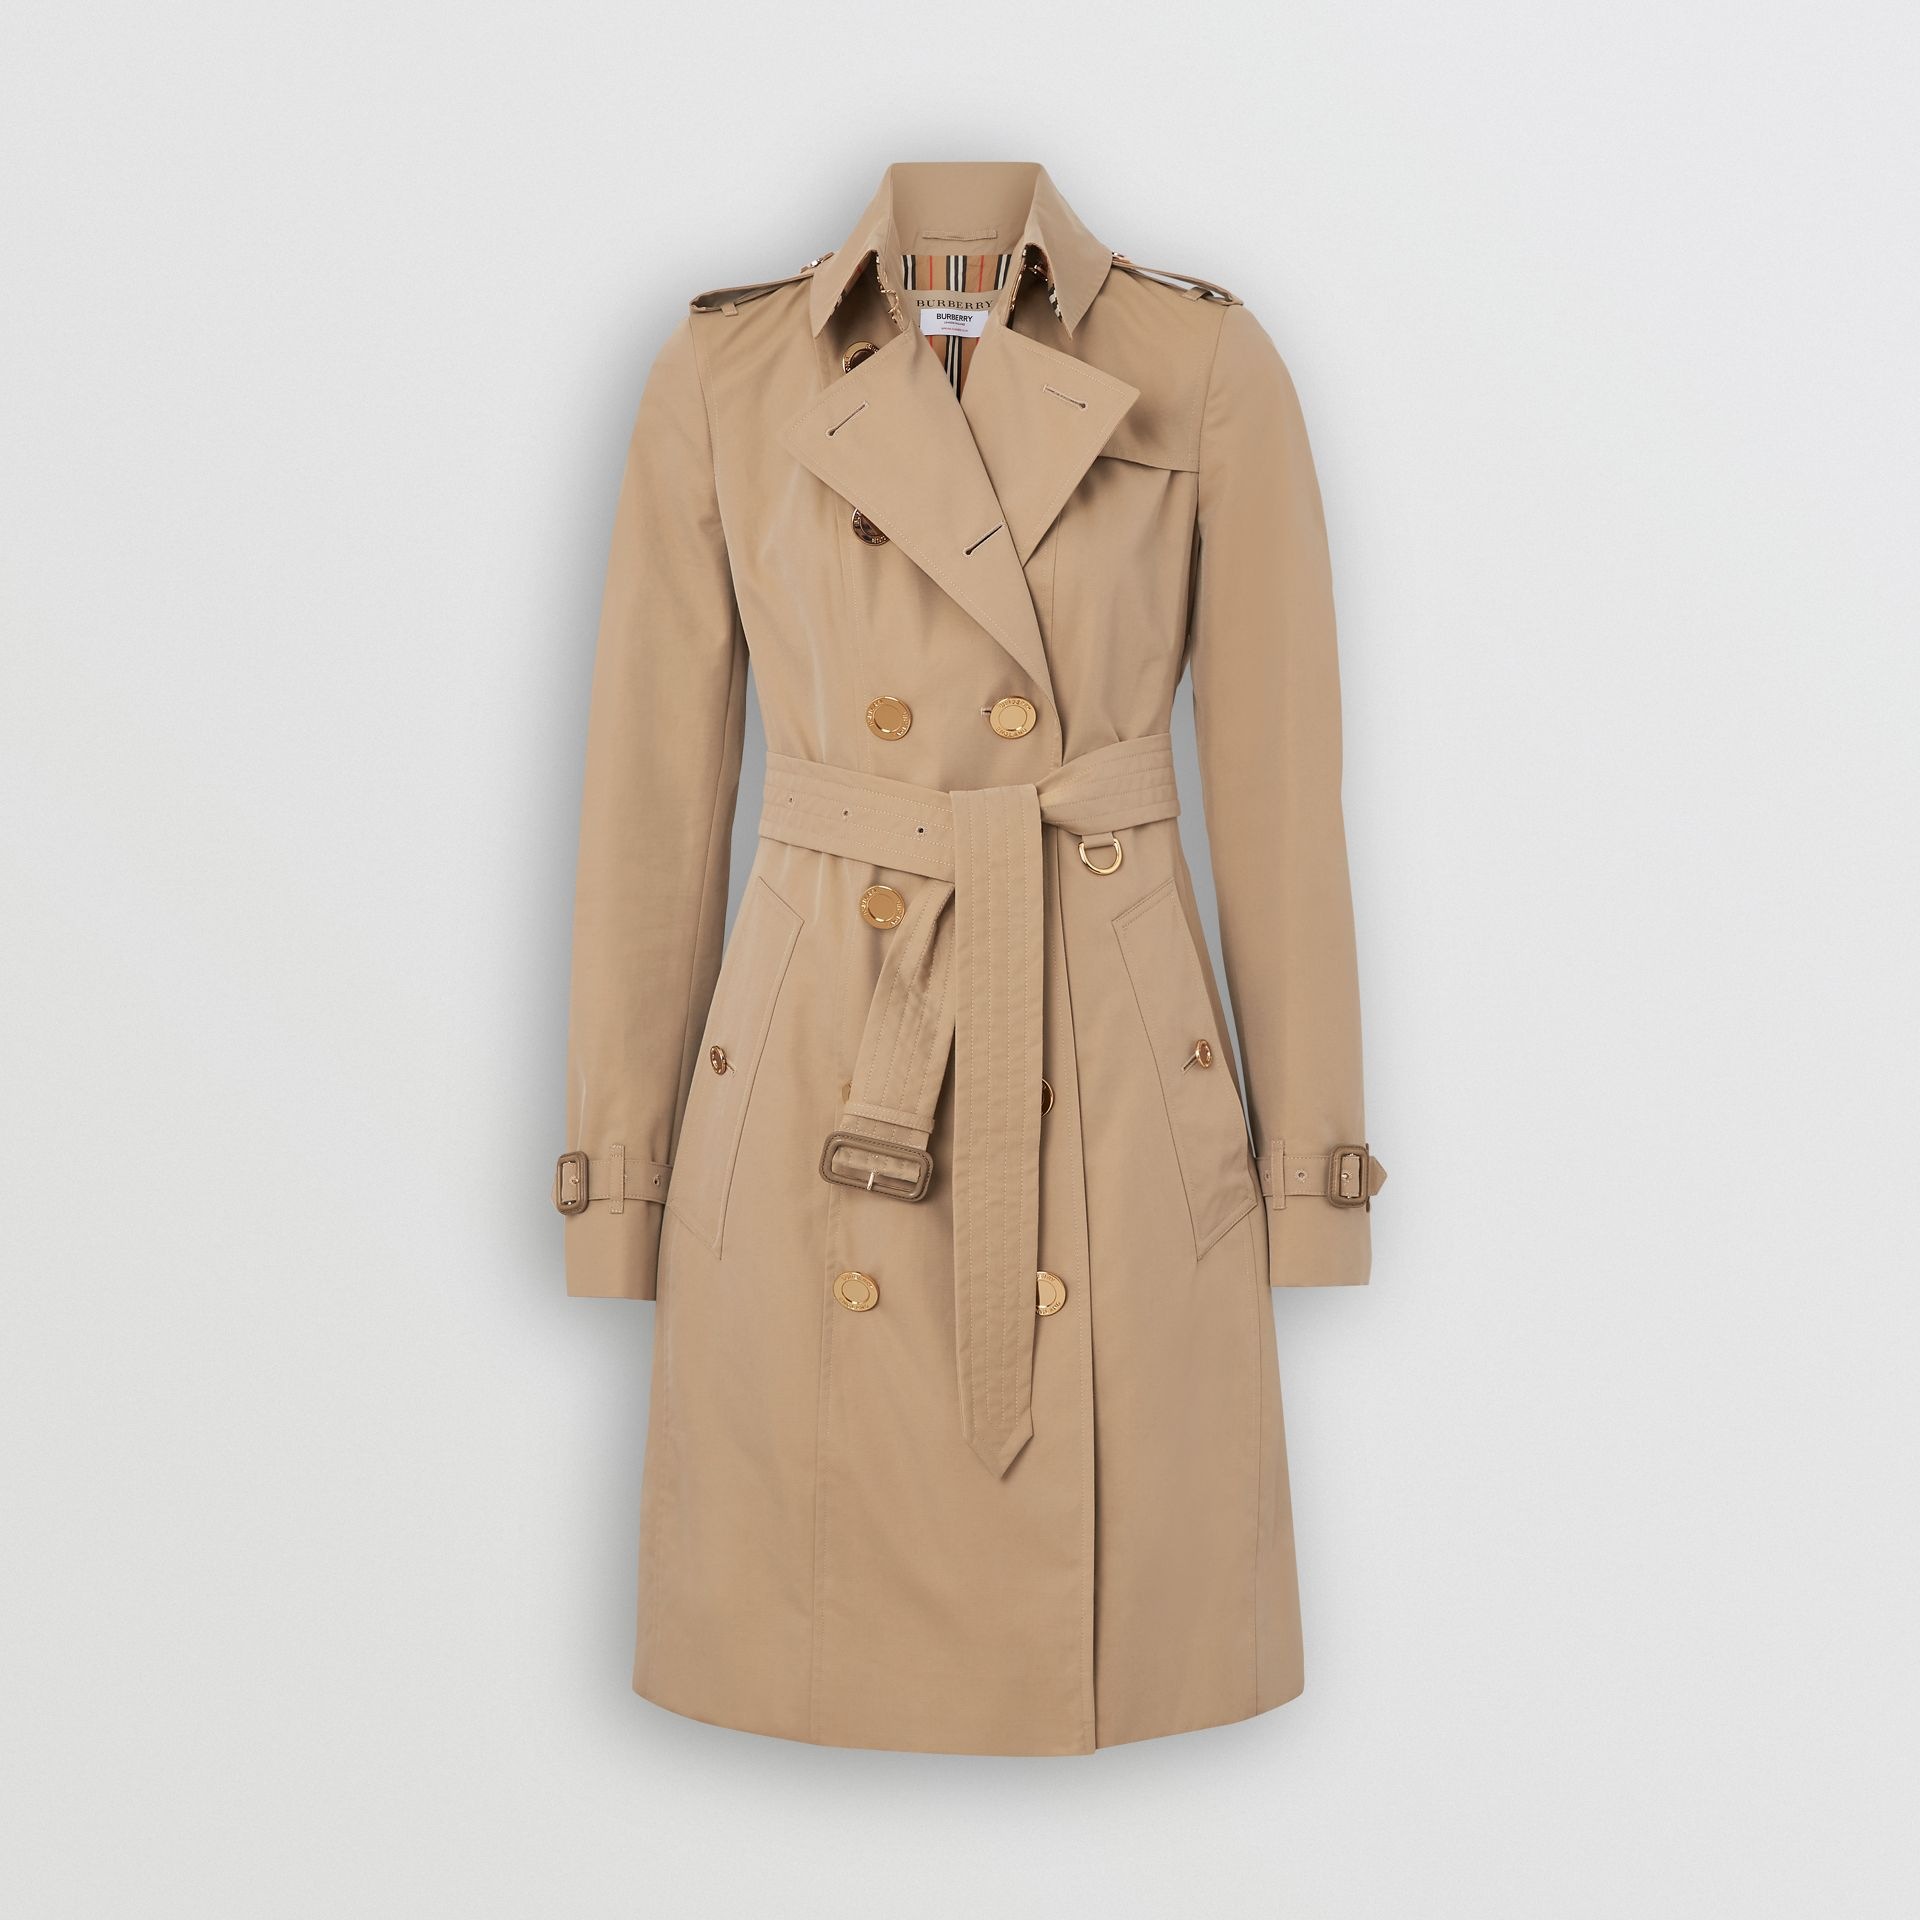 Gold Button Cotton Gabardine Trench Coat in Honey - Women | Burberry Hong Kong S.A.R - gallery image 3